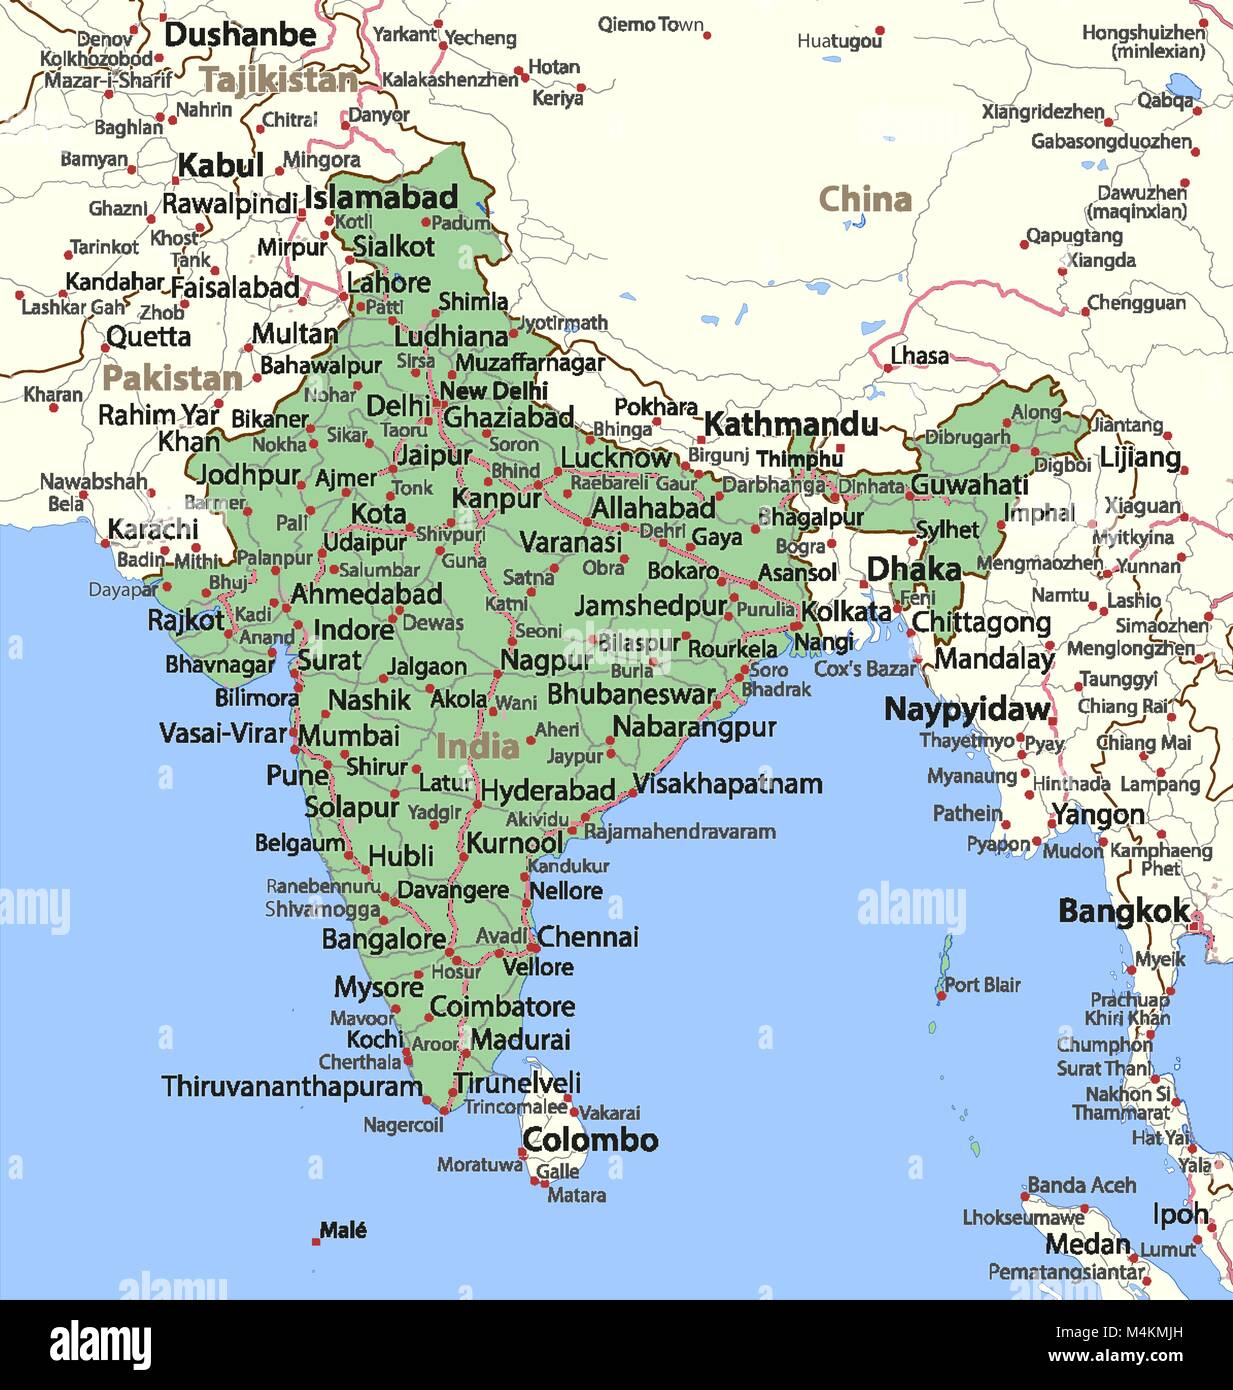 India Map With States Stock Photos & India Map With States Stock ...